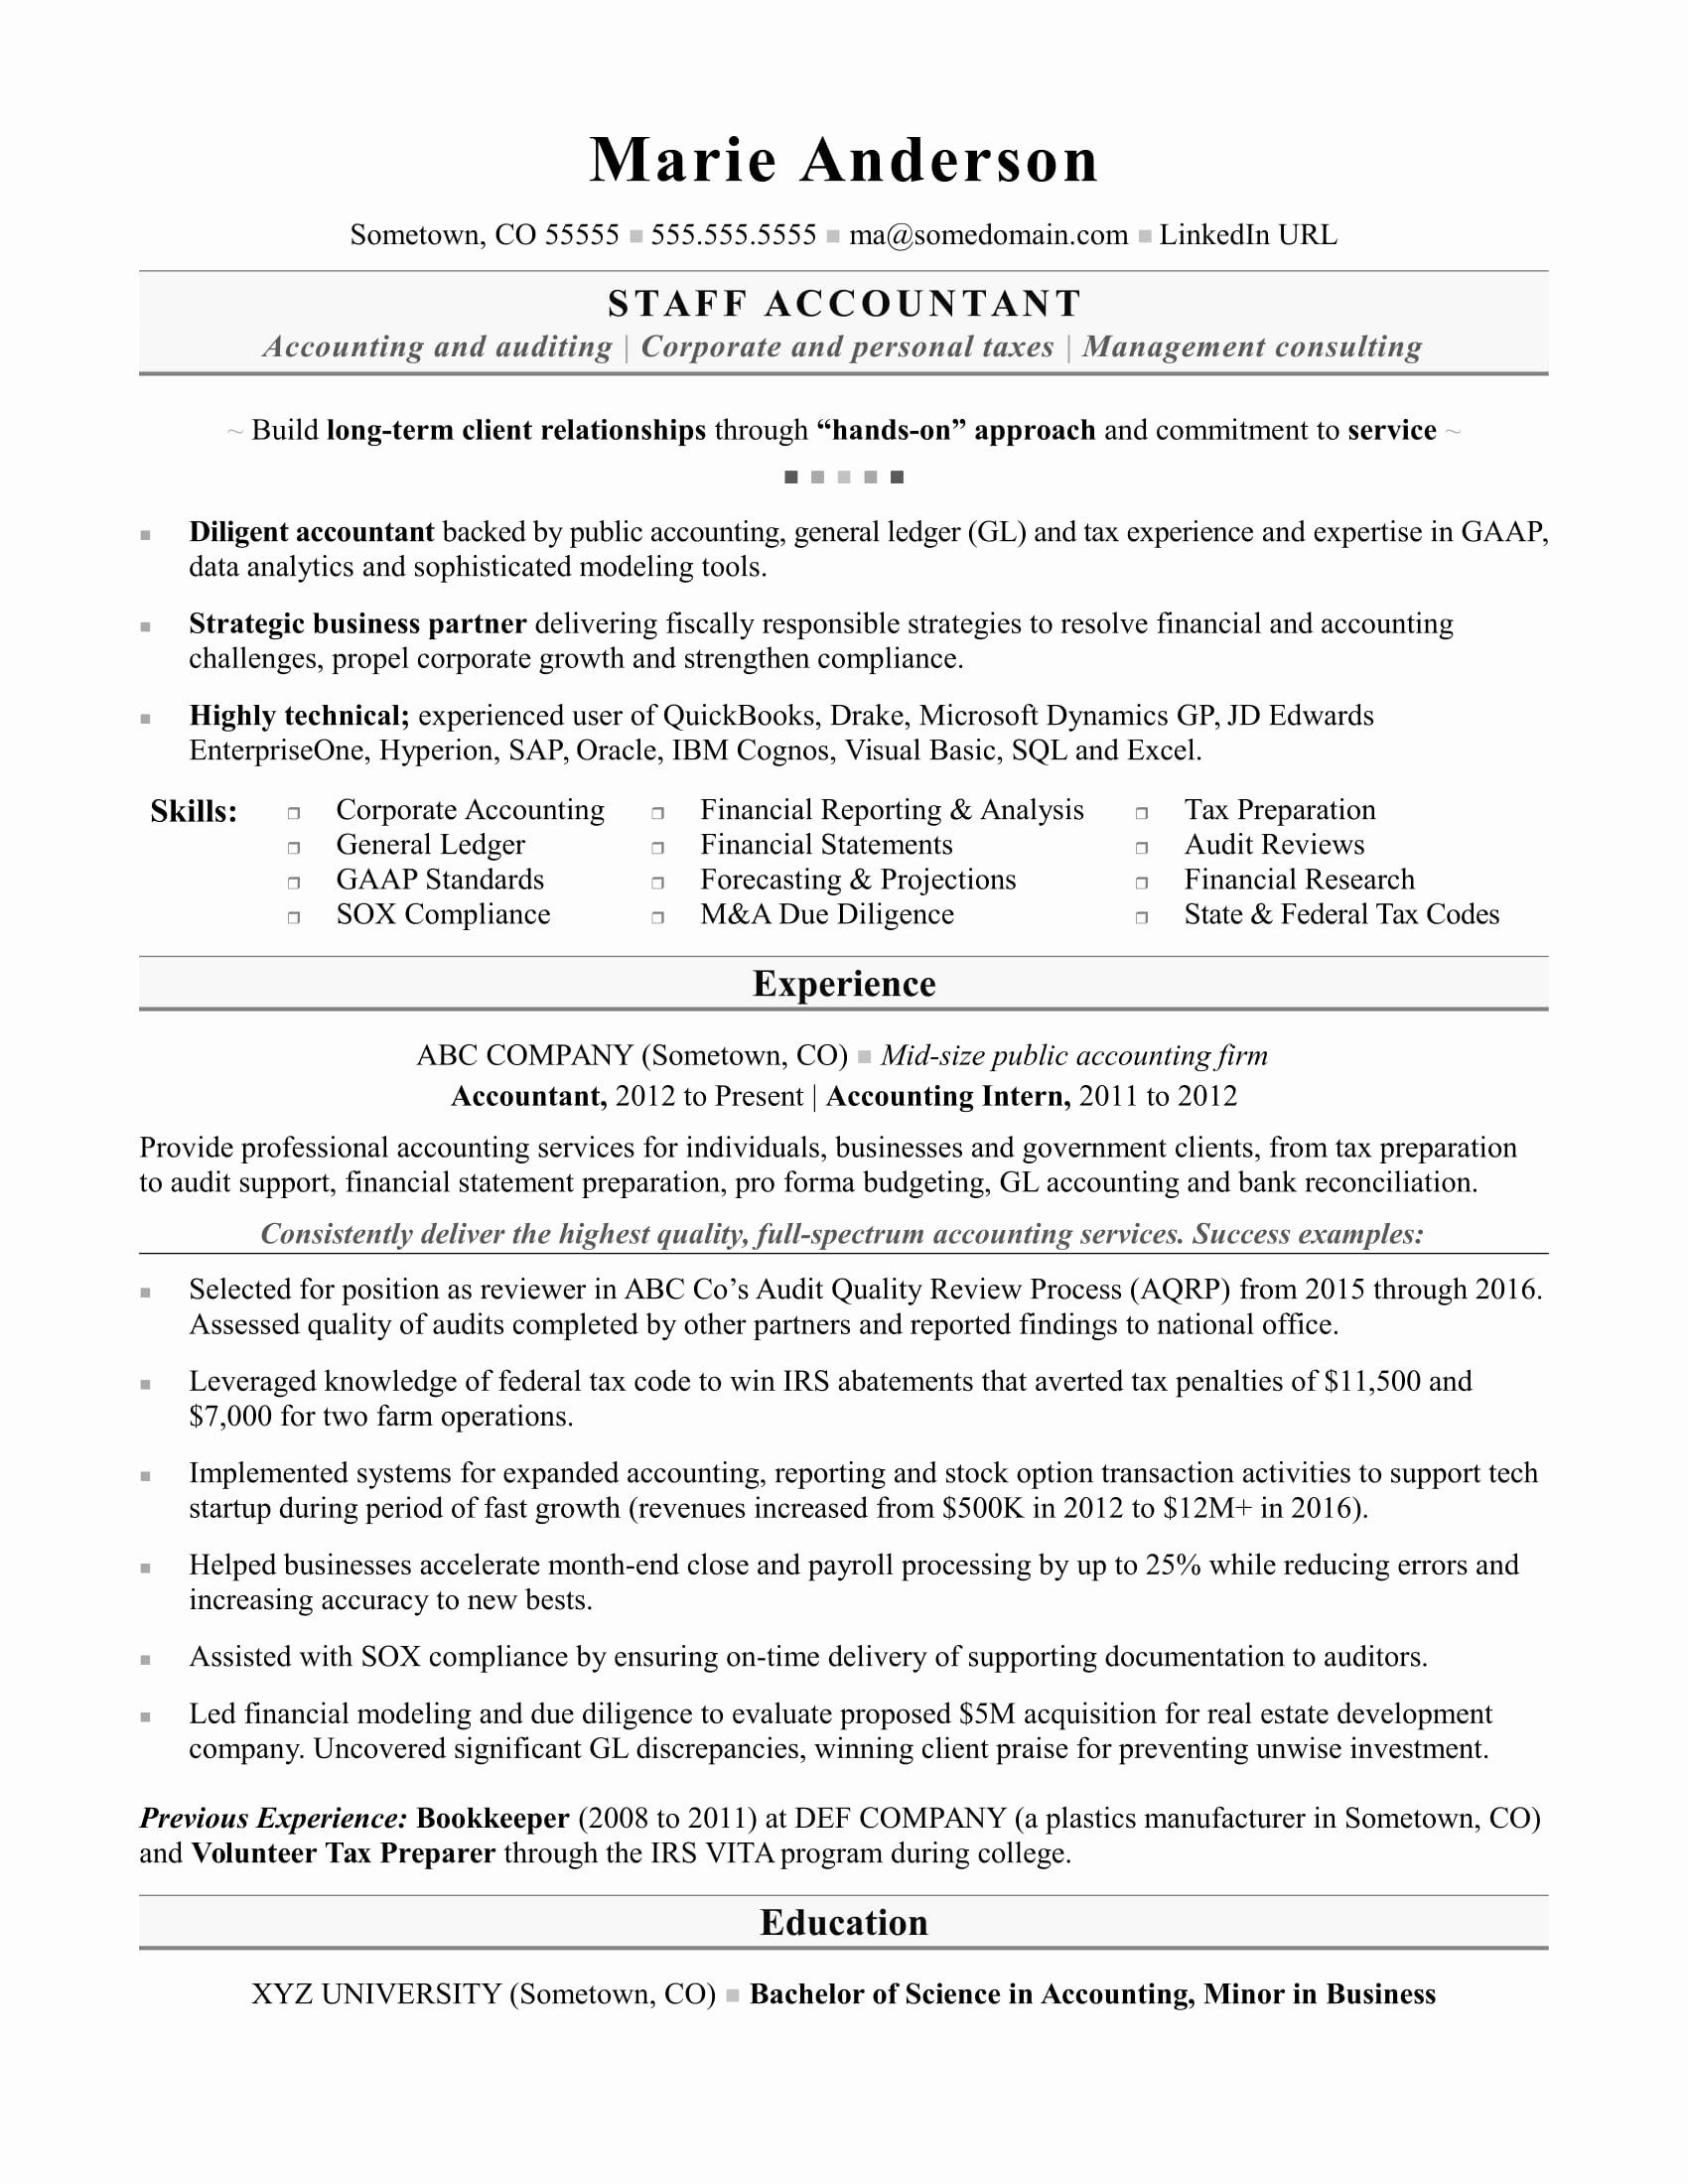 Staff Accountant Resume Examples Fresh Accounting Resume